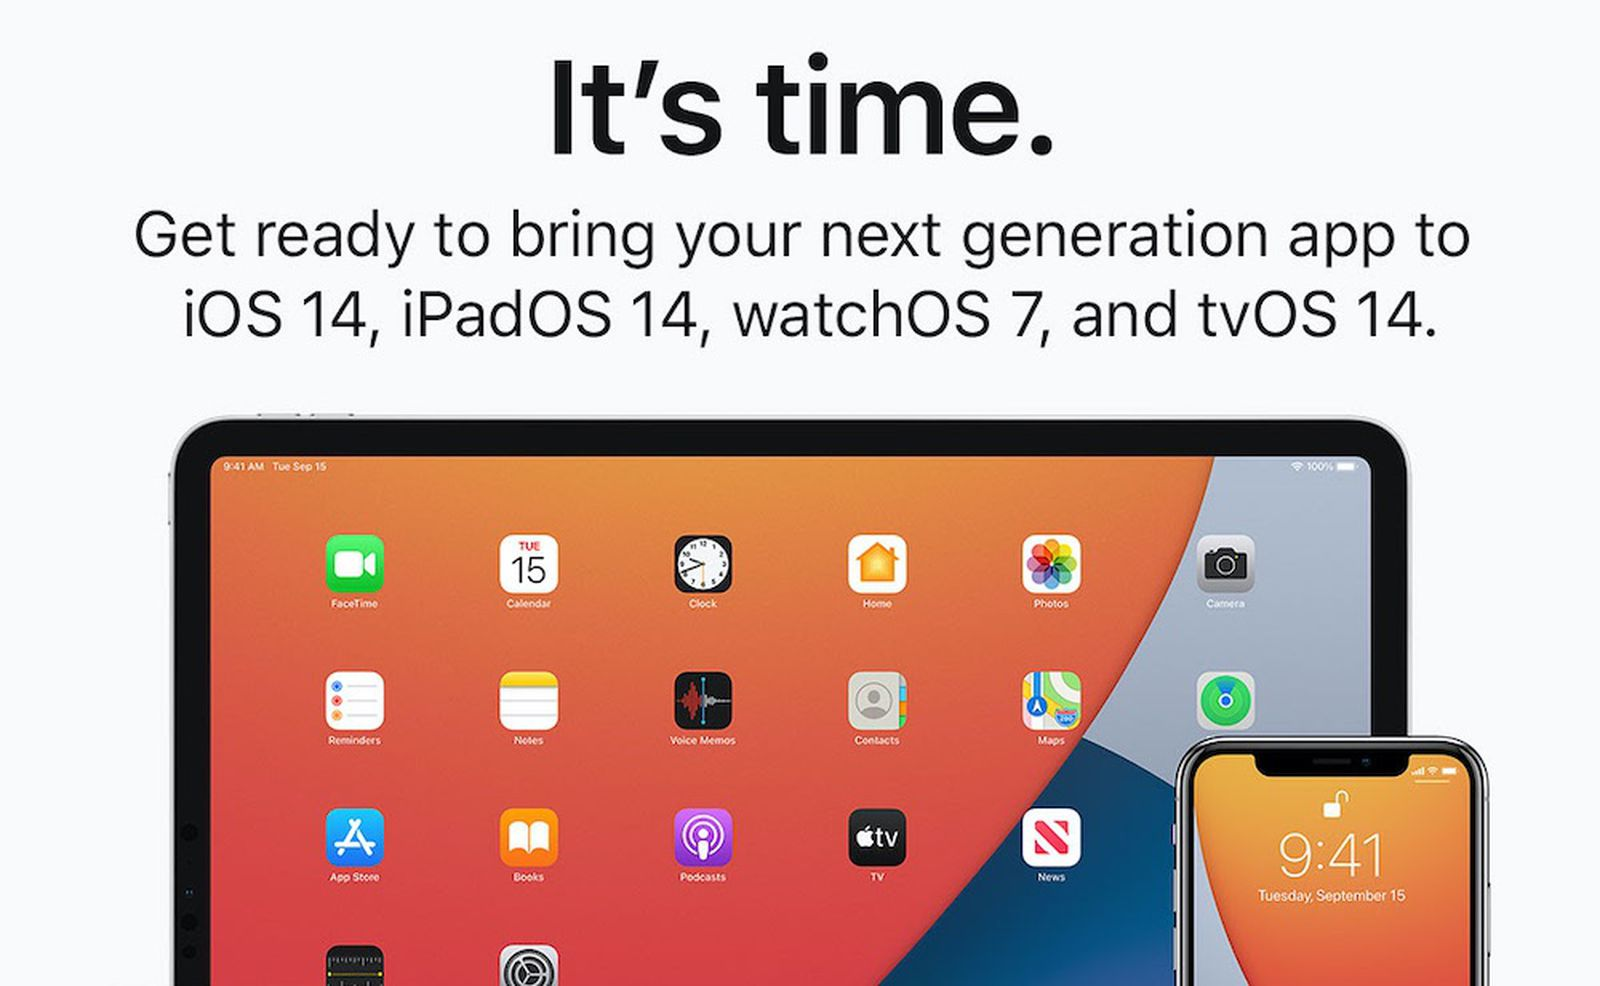 ios 14 submit apps banner.'